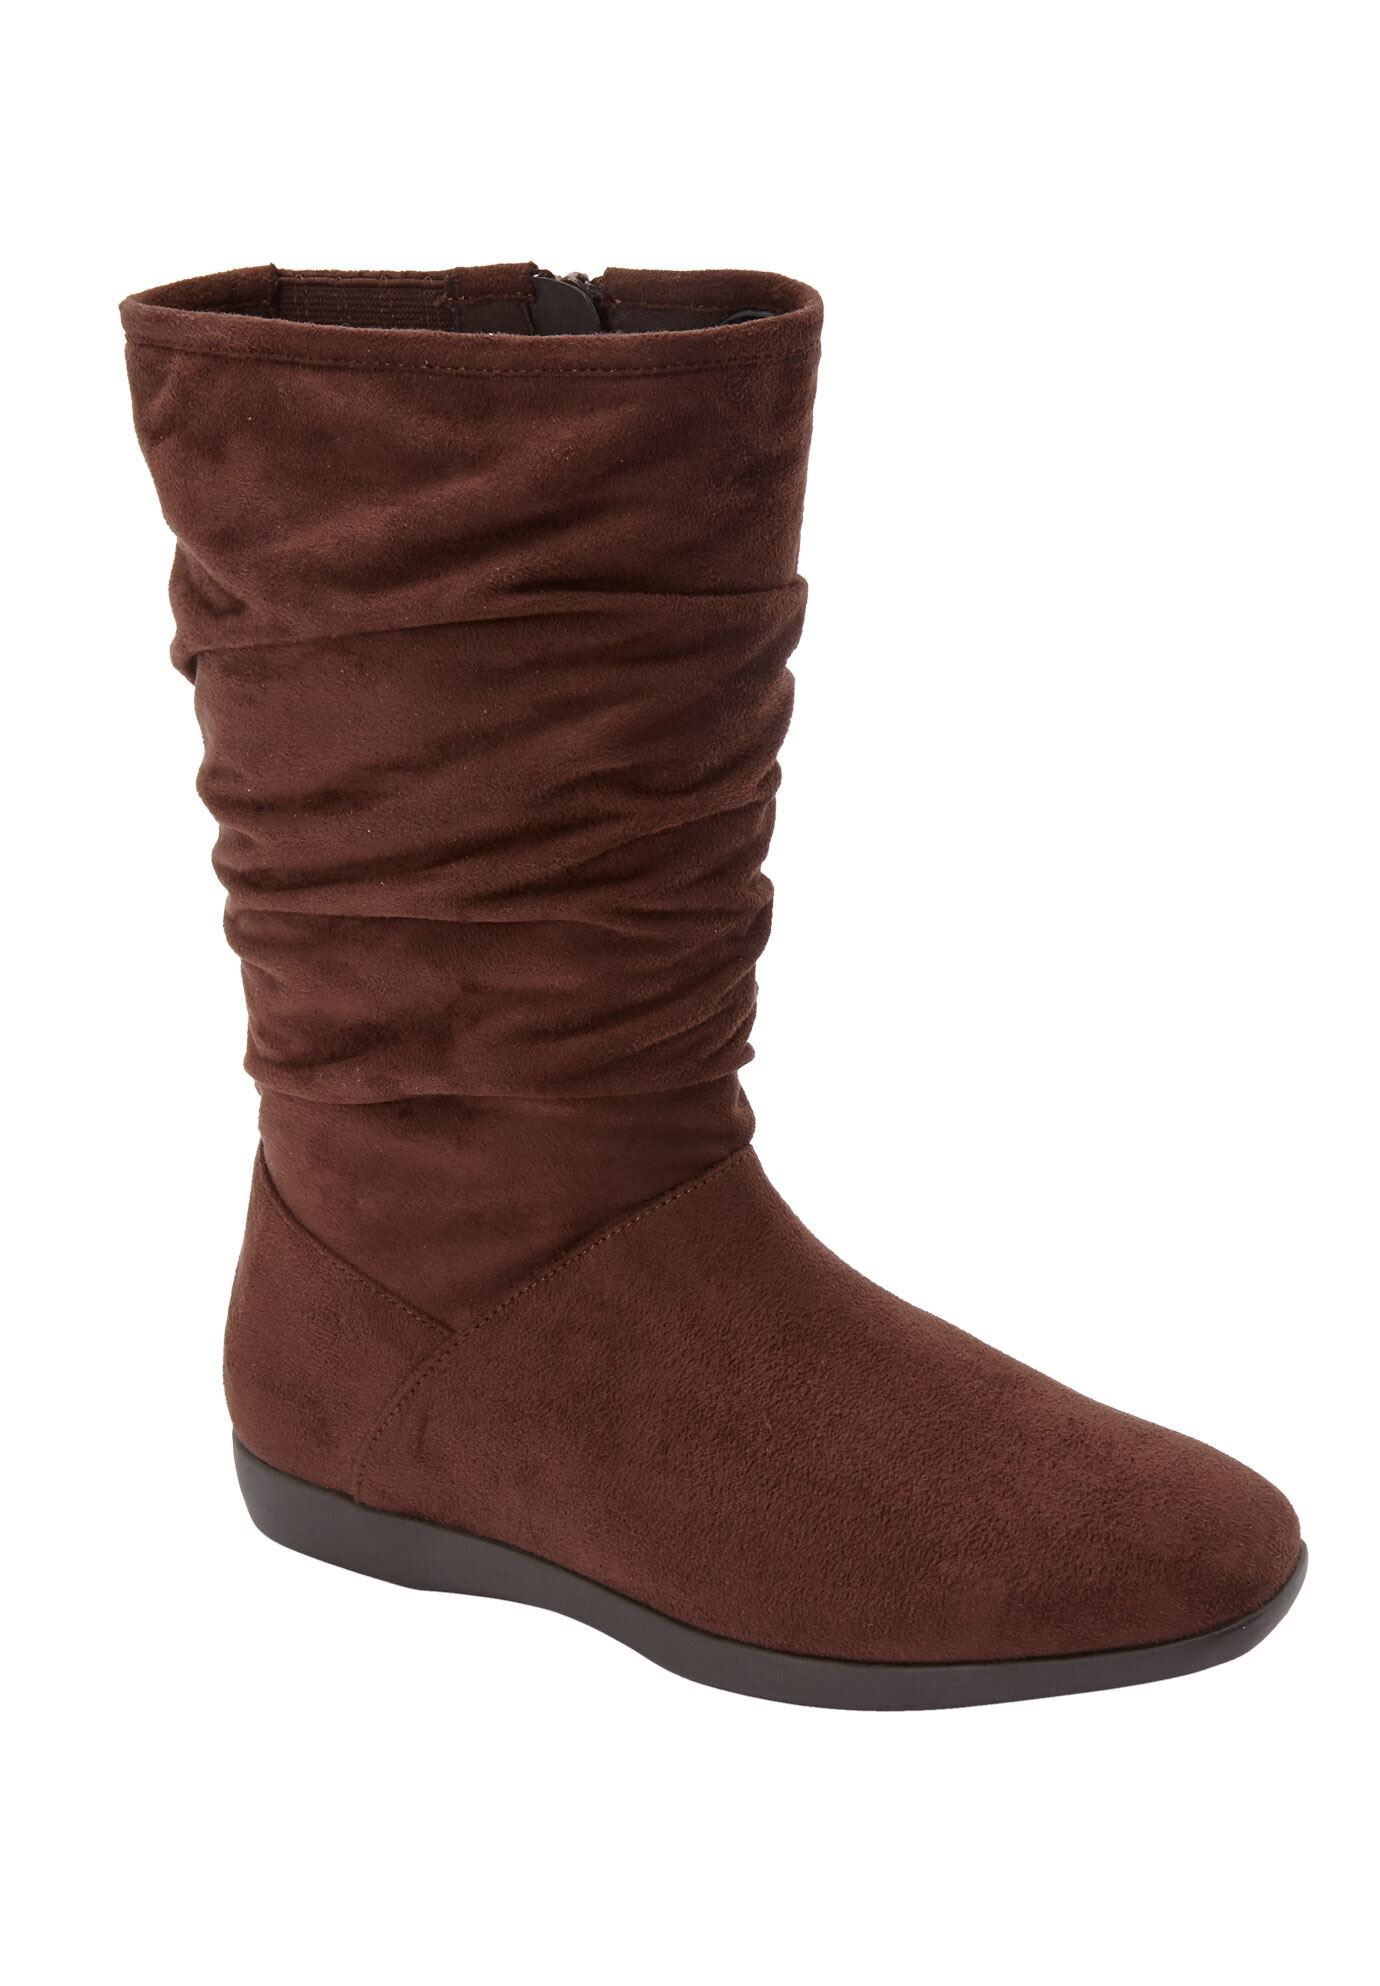 Wide Width Zapatos Brand Comfortview Within for Mujer  Mujer Within Comfortview a68938